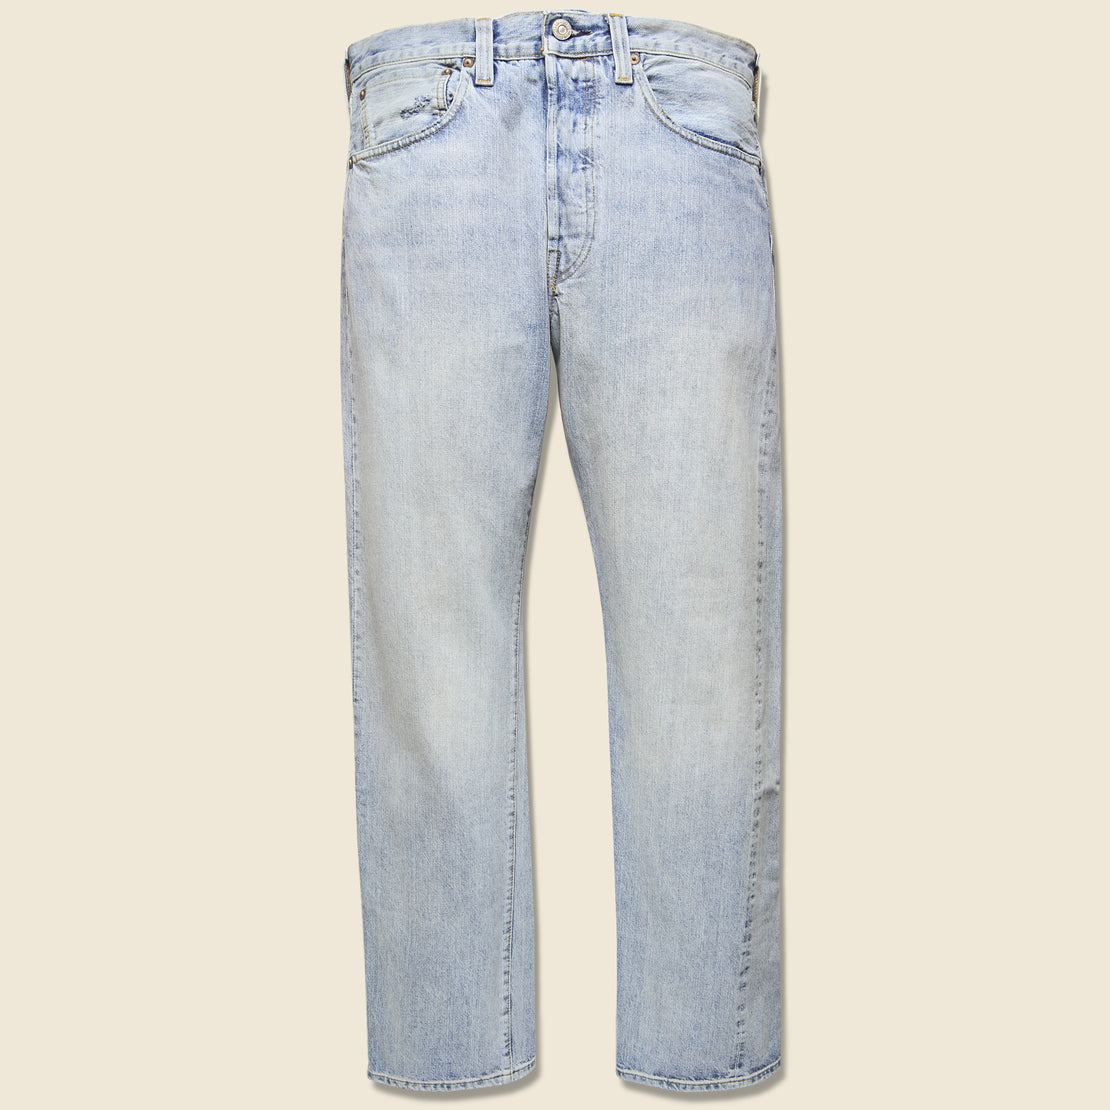 Levis Vintage Clothing 1947 501 Jean - Whiplash